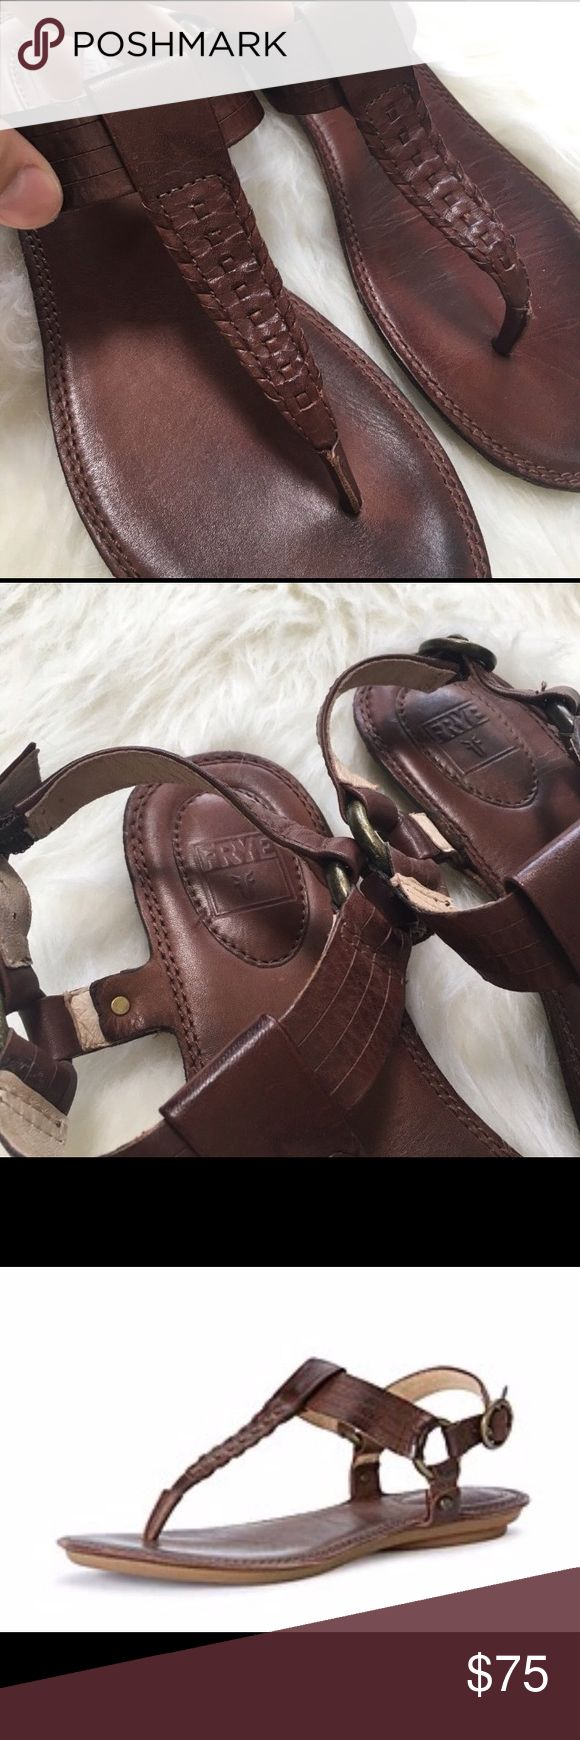 Frye Alessia Artisanal T strap sandal Reposh. Beautiful, perfect condition, real leather sandal. I usually wear a 7, sometimes 7.5 so these were a gamble and they are a bit too big. The last two photos are of them on my foot, I just don't like that much sole in front of my toes. I got a great deal on them and am only asking what I paid. Trade possible for similar quality sandals in a 7. Thanks! Frye Shoes Sandals